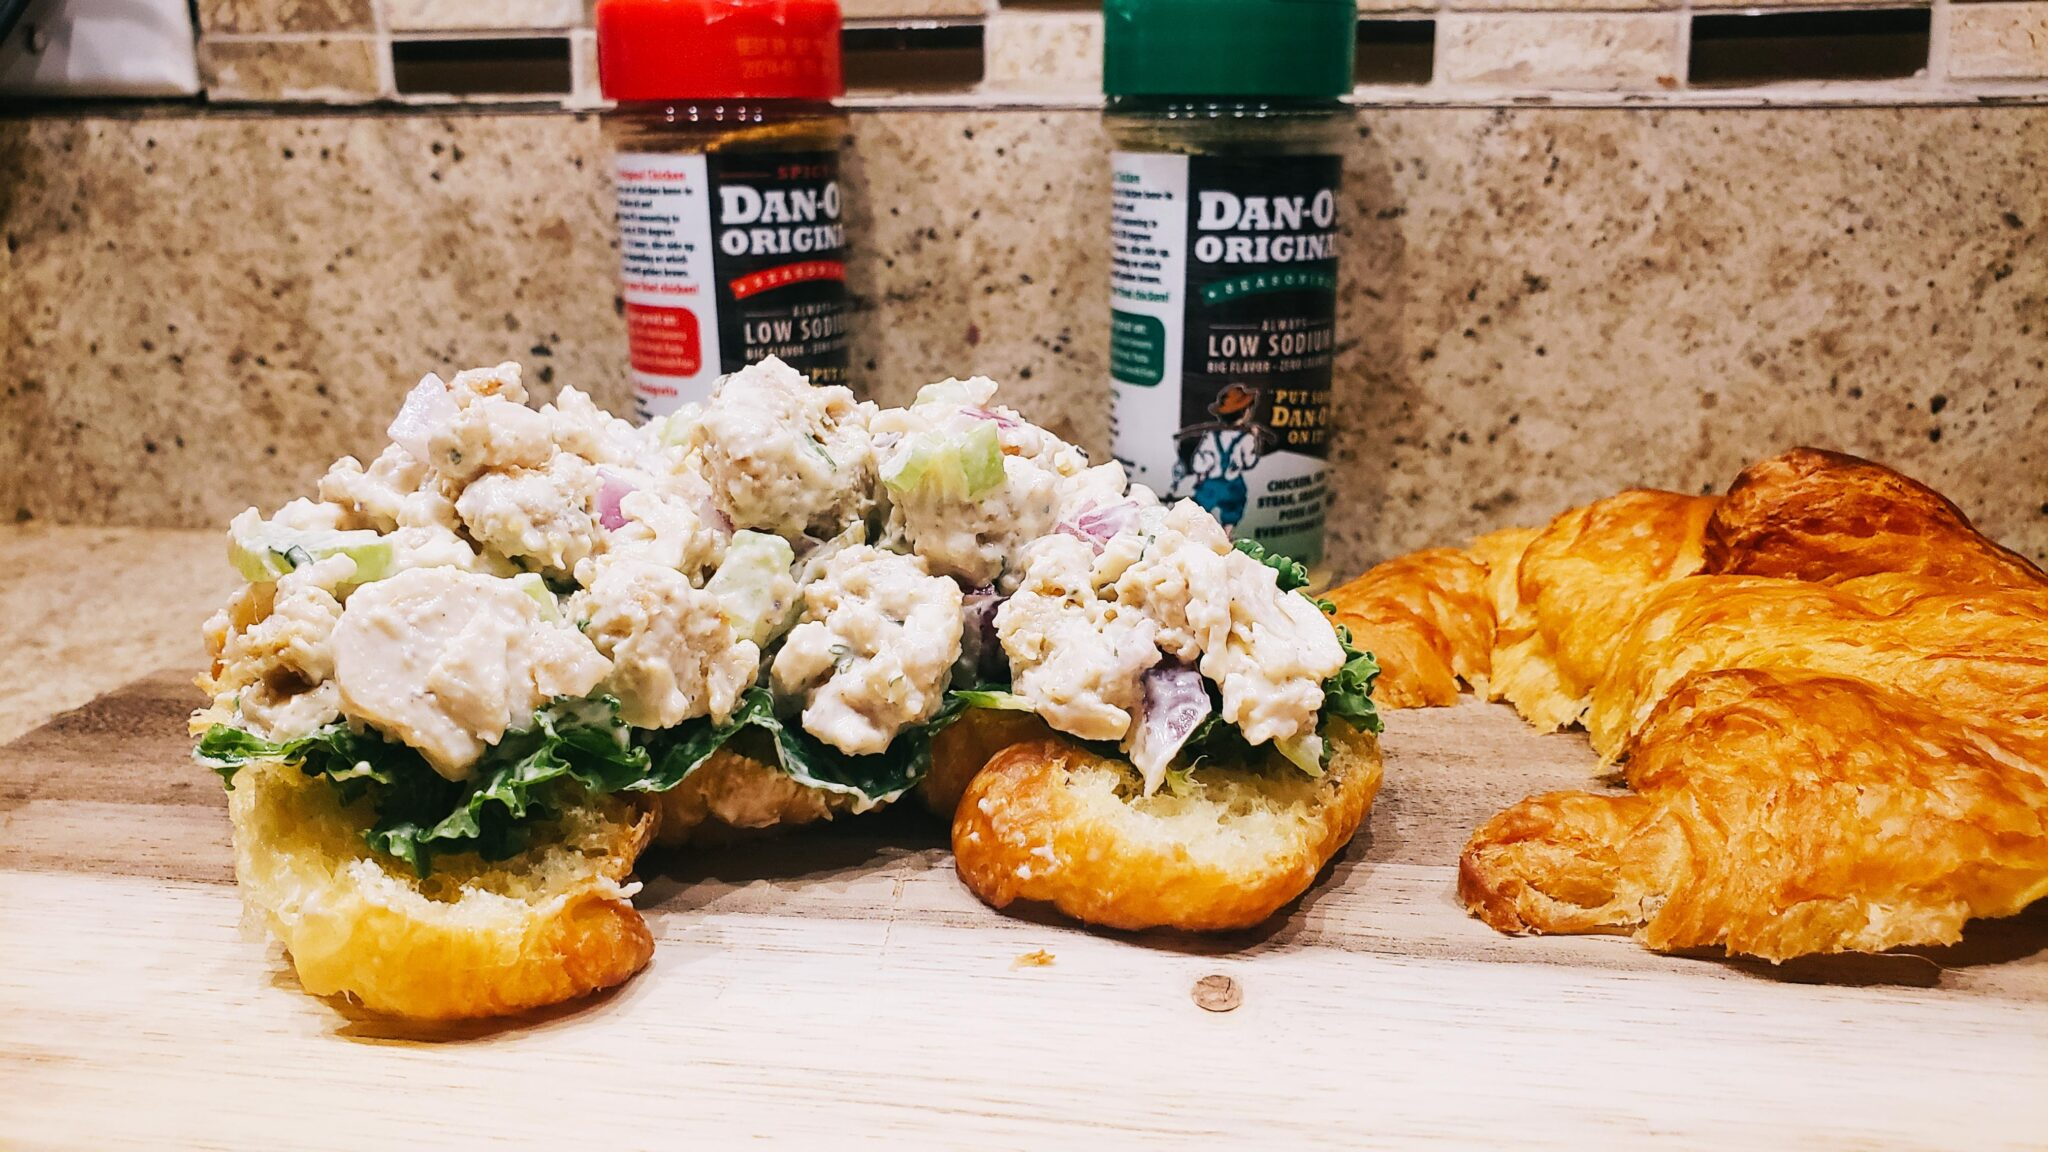 Image of fried chicken salad on a croissant